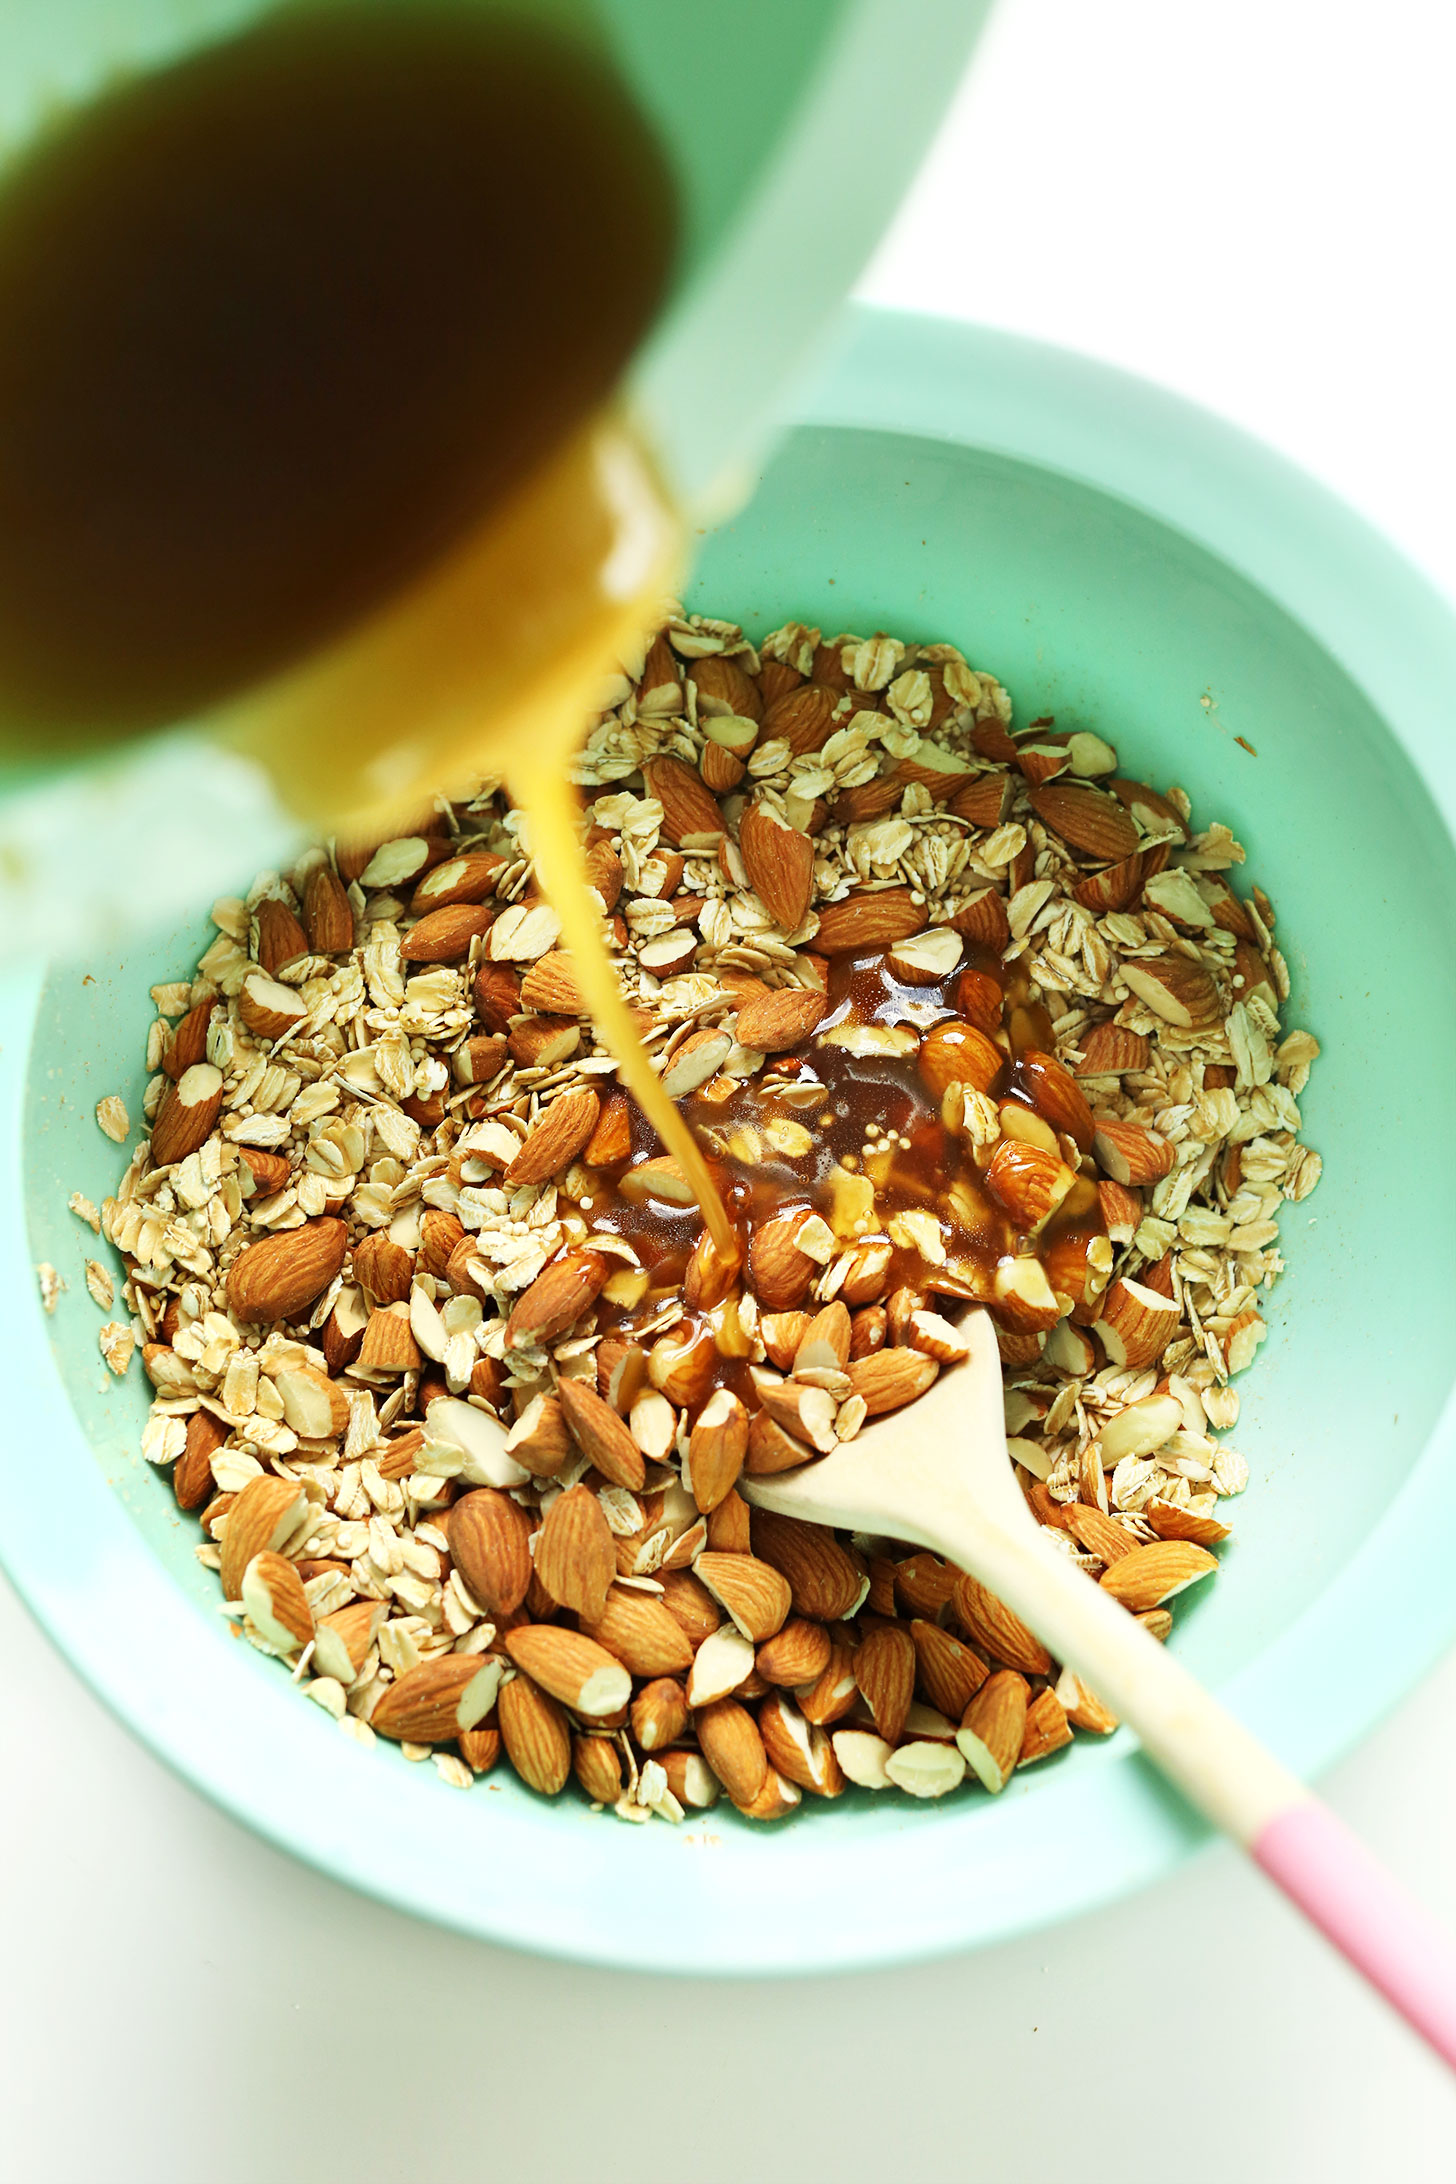 Pouring wet ingredients into dry for our homemade Quinoa Granola recipe